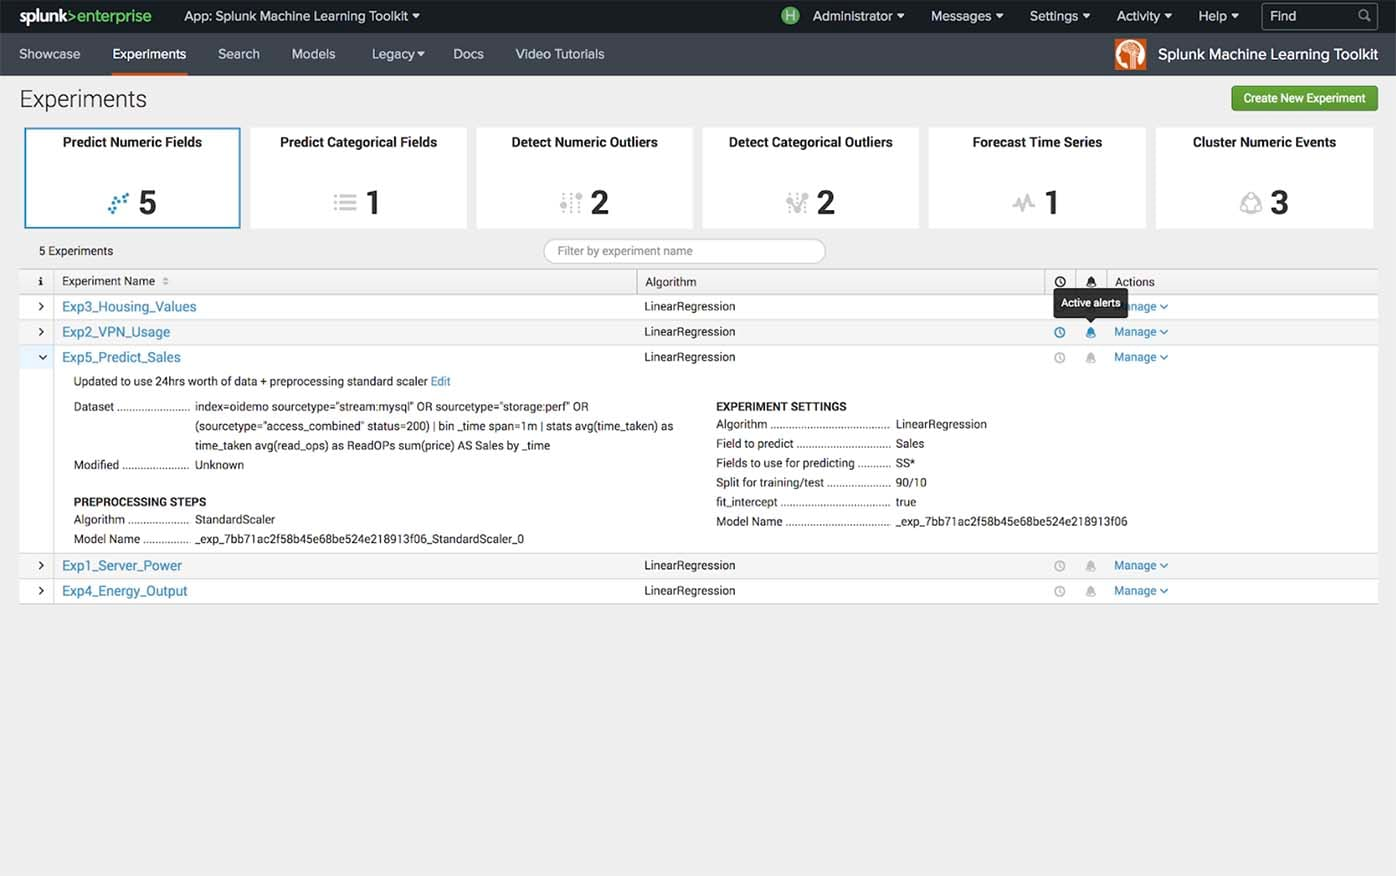 Splunk Machine Learning Toolkit Experiments